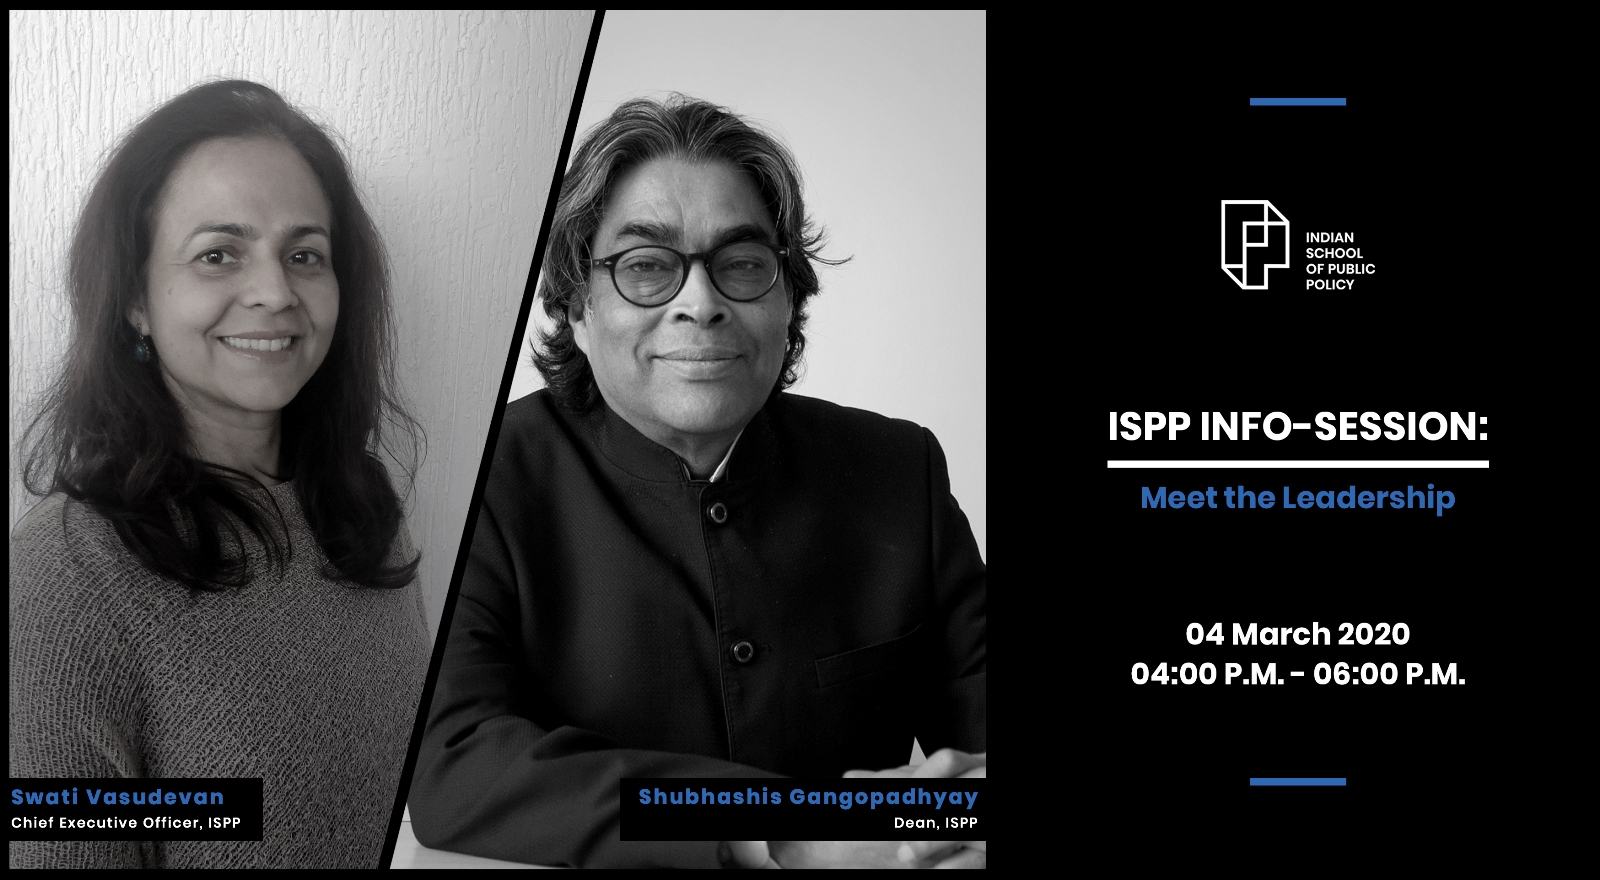 ISPP Info-Session: Meet The Leadership